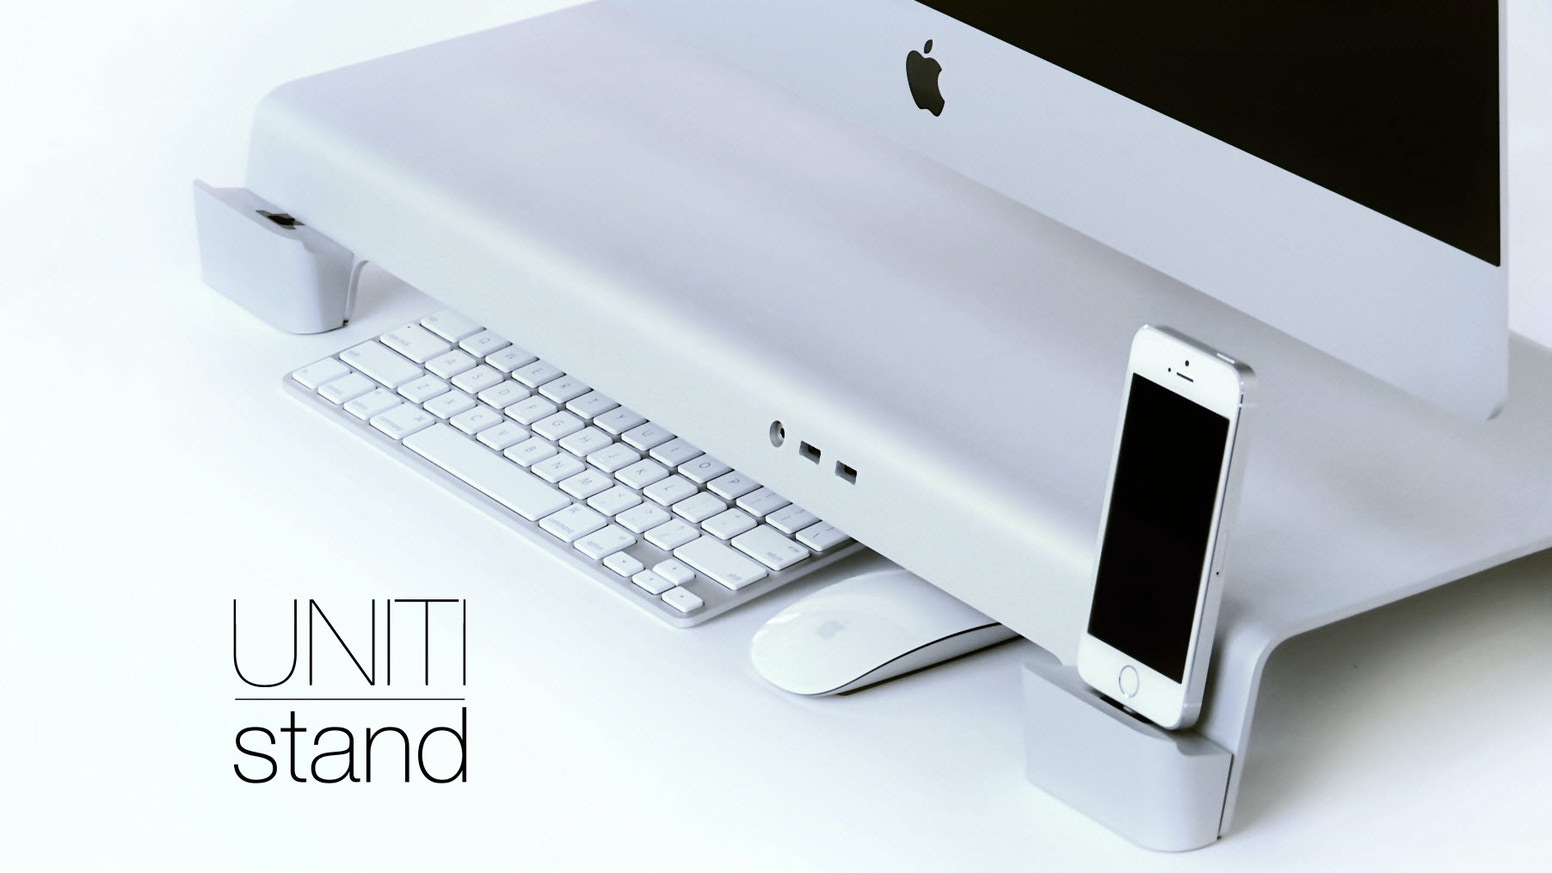 The first all-in-one stand with integrated dock and charging system for your mobile and tablet devices.